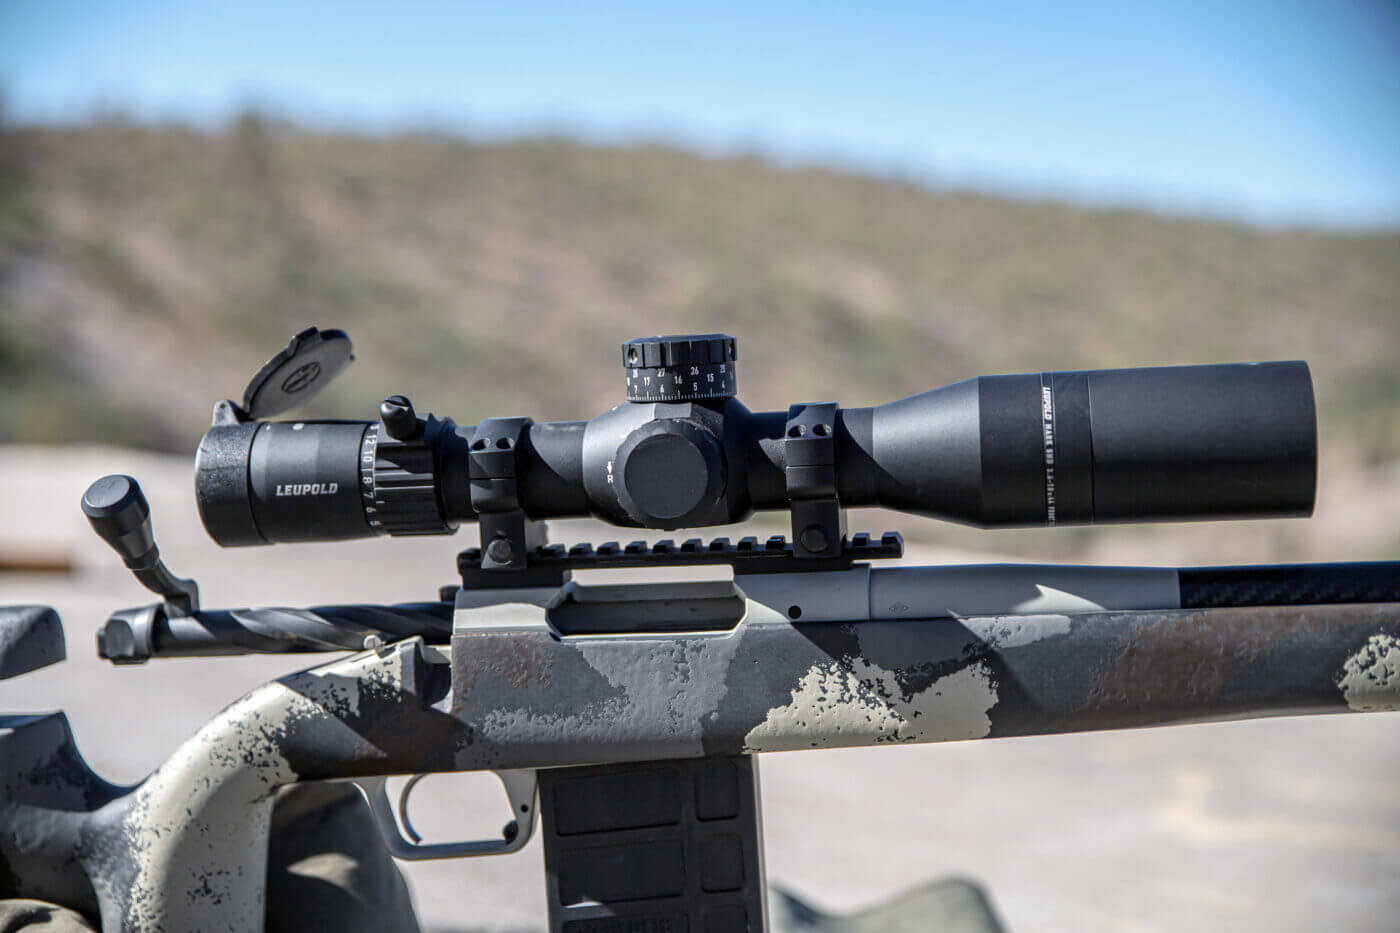 Leupold Mark 5HD 3.6-18x44 scope mounted to a Waypoint